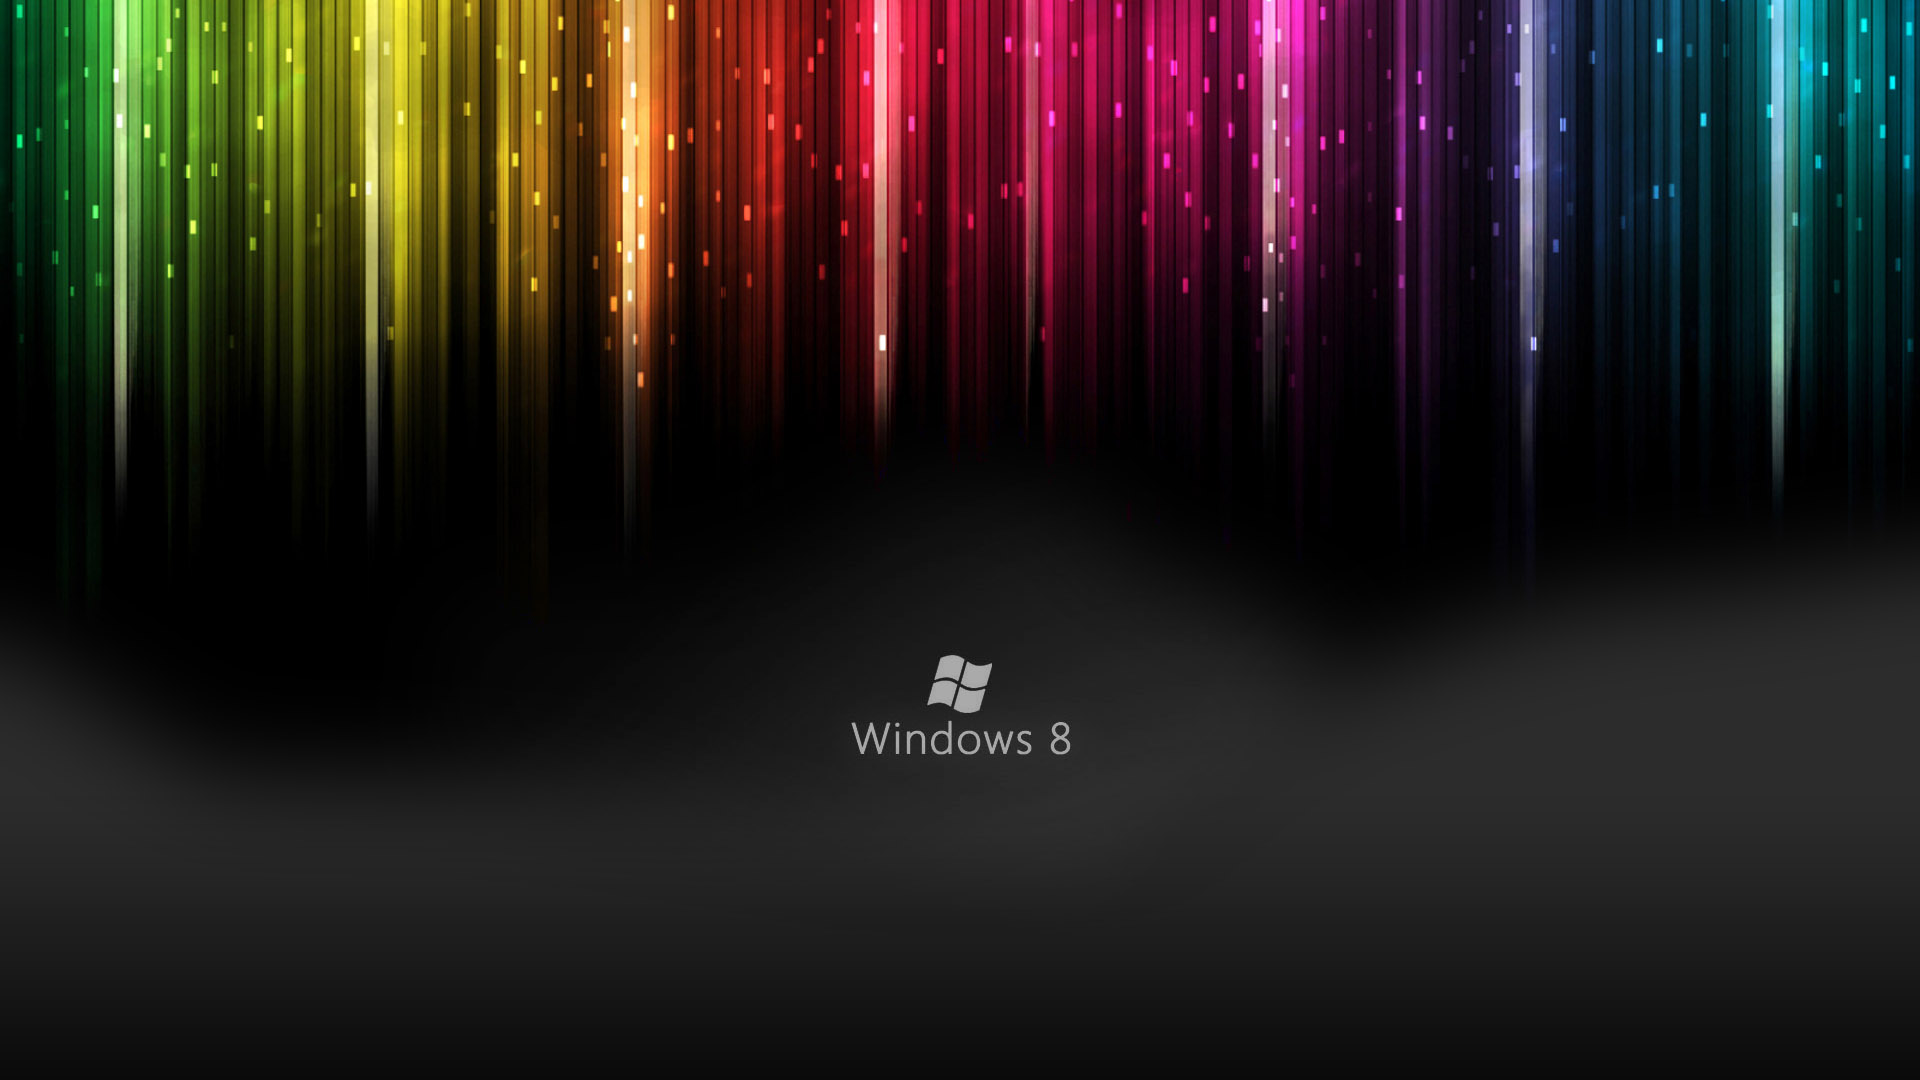 Windows 8 Live Wallpapers HD Wallpapers 1920x1080